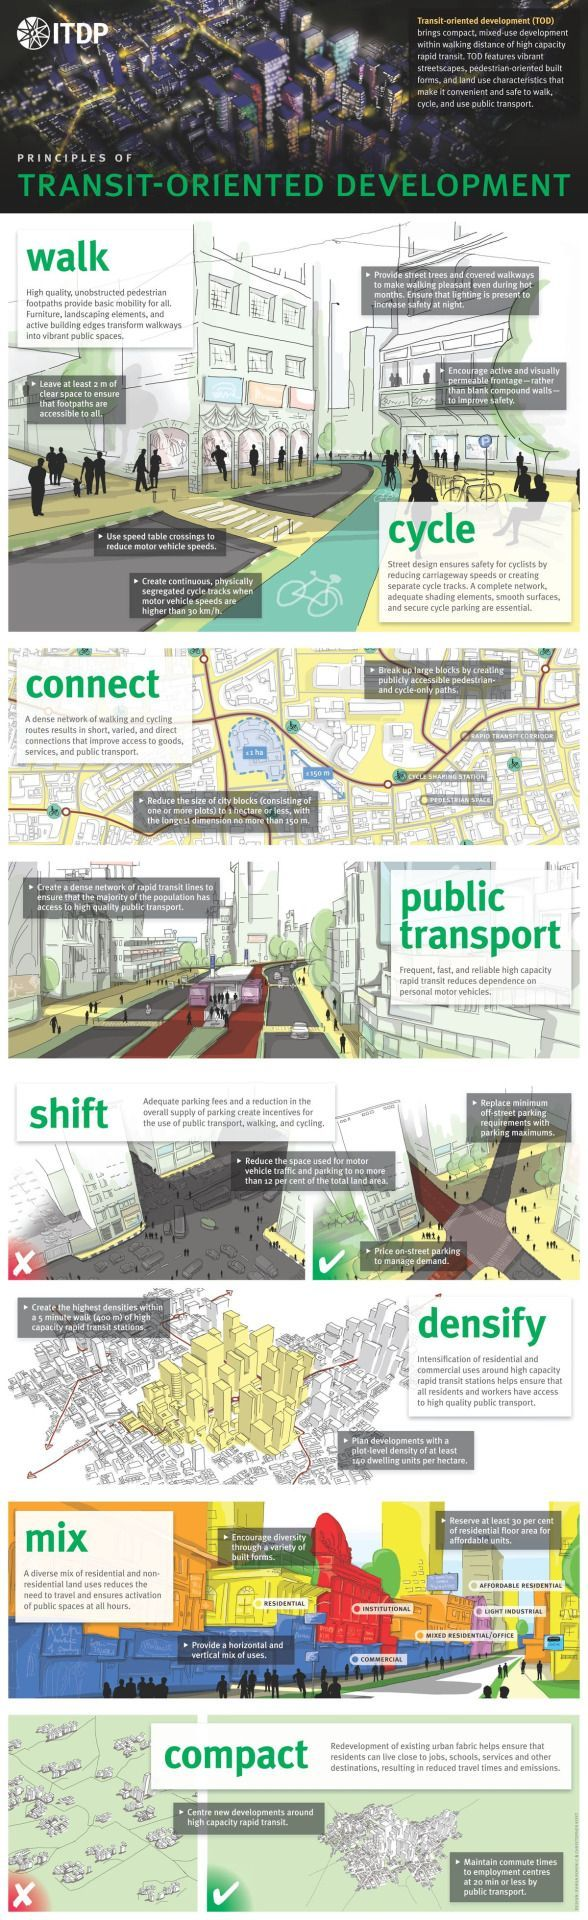 #transitorientated #psychologically #sustainability #connectivity #interactions #walkability #development #diversity #socially #combines #physical #program #spatial #concept #mixedTransit-orientated development is a concept that combines spatial diversity (mixed use program), walkability, and sustainability. The physical interactions lead to connectivity socially, and psychologically. #urbaneanalyse